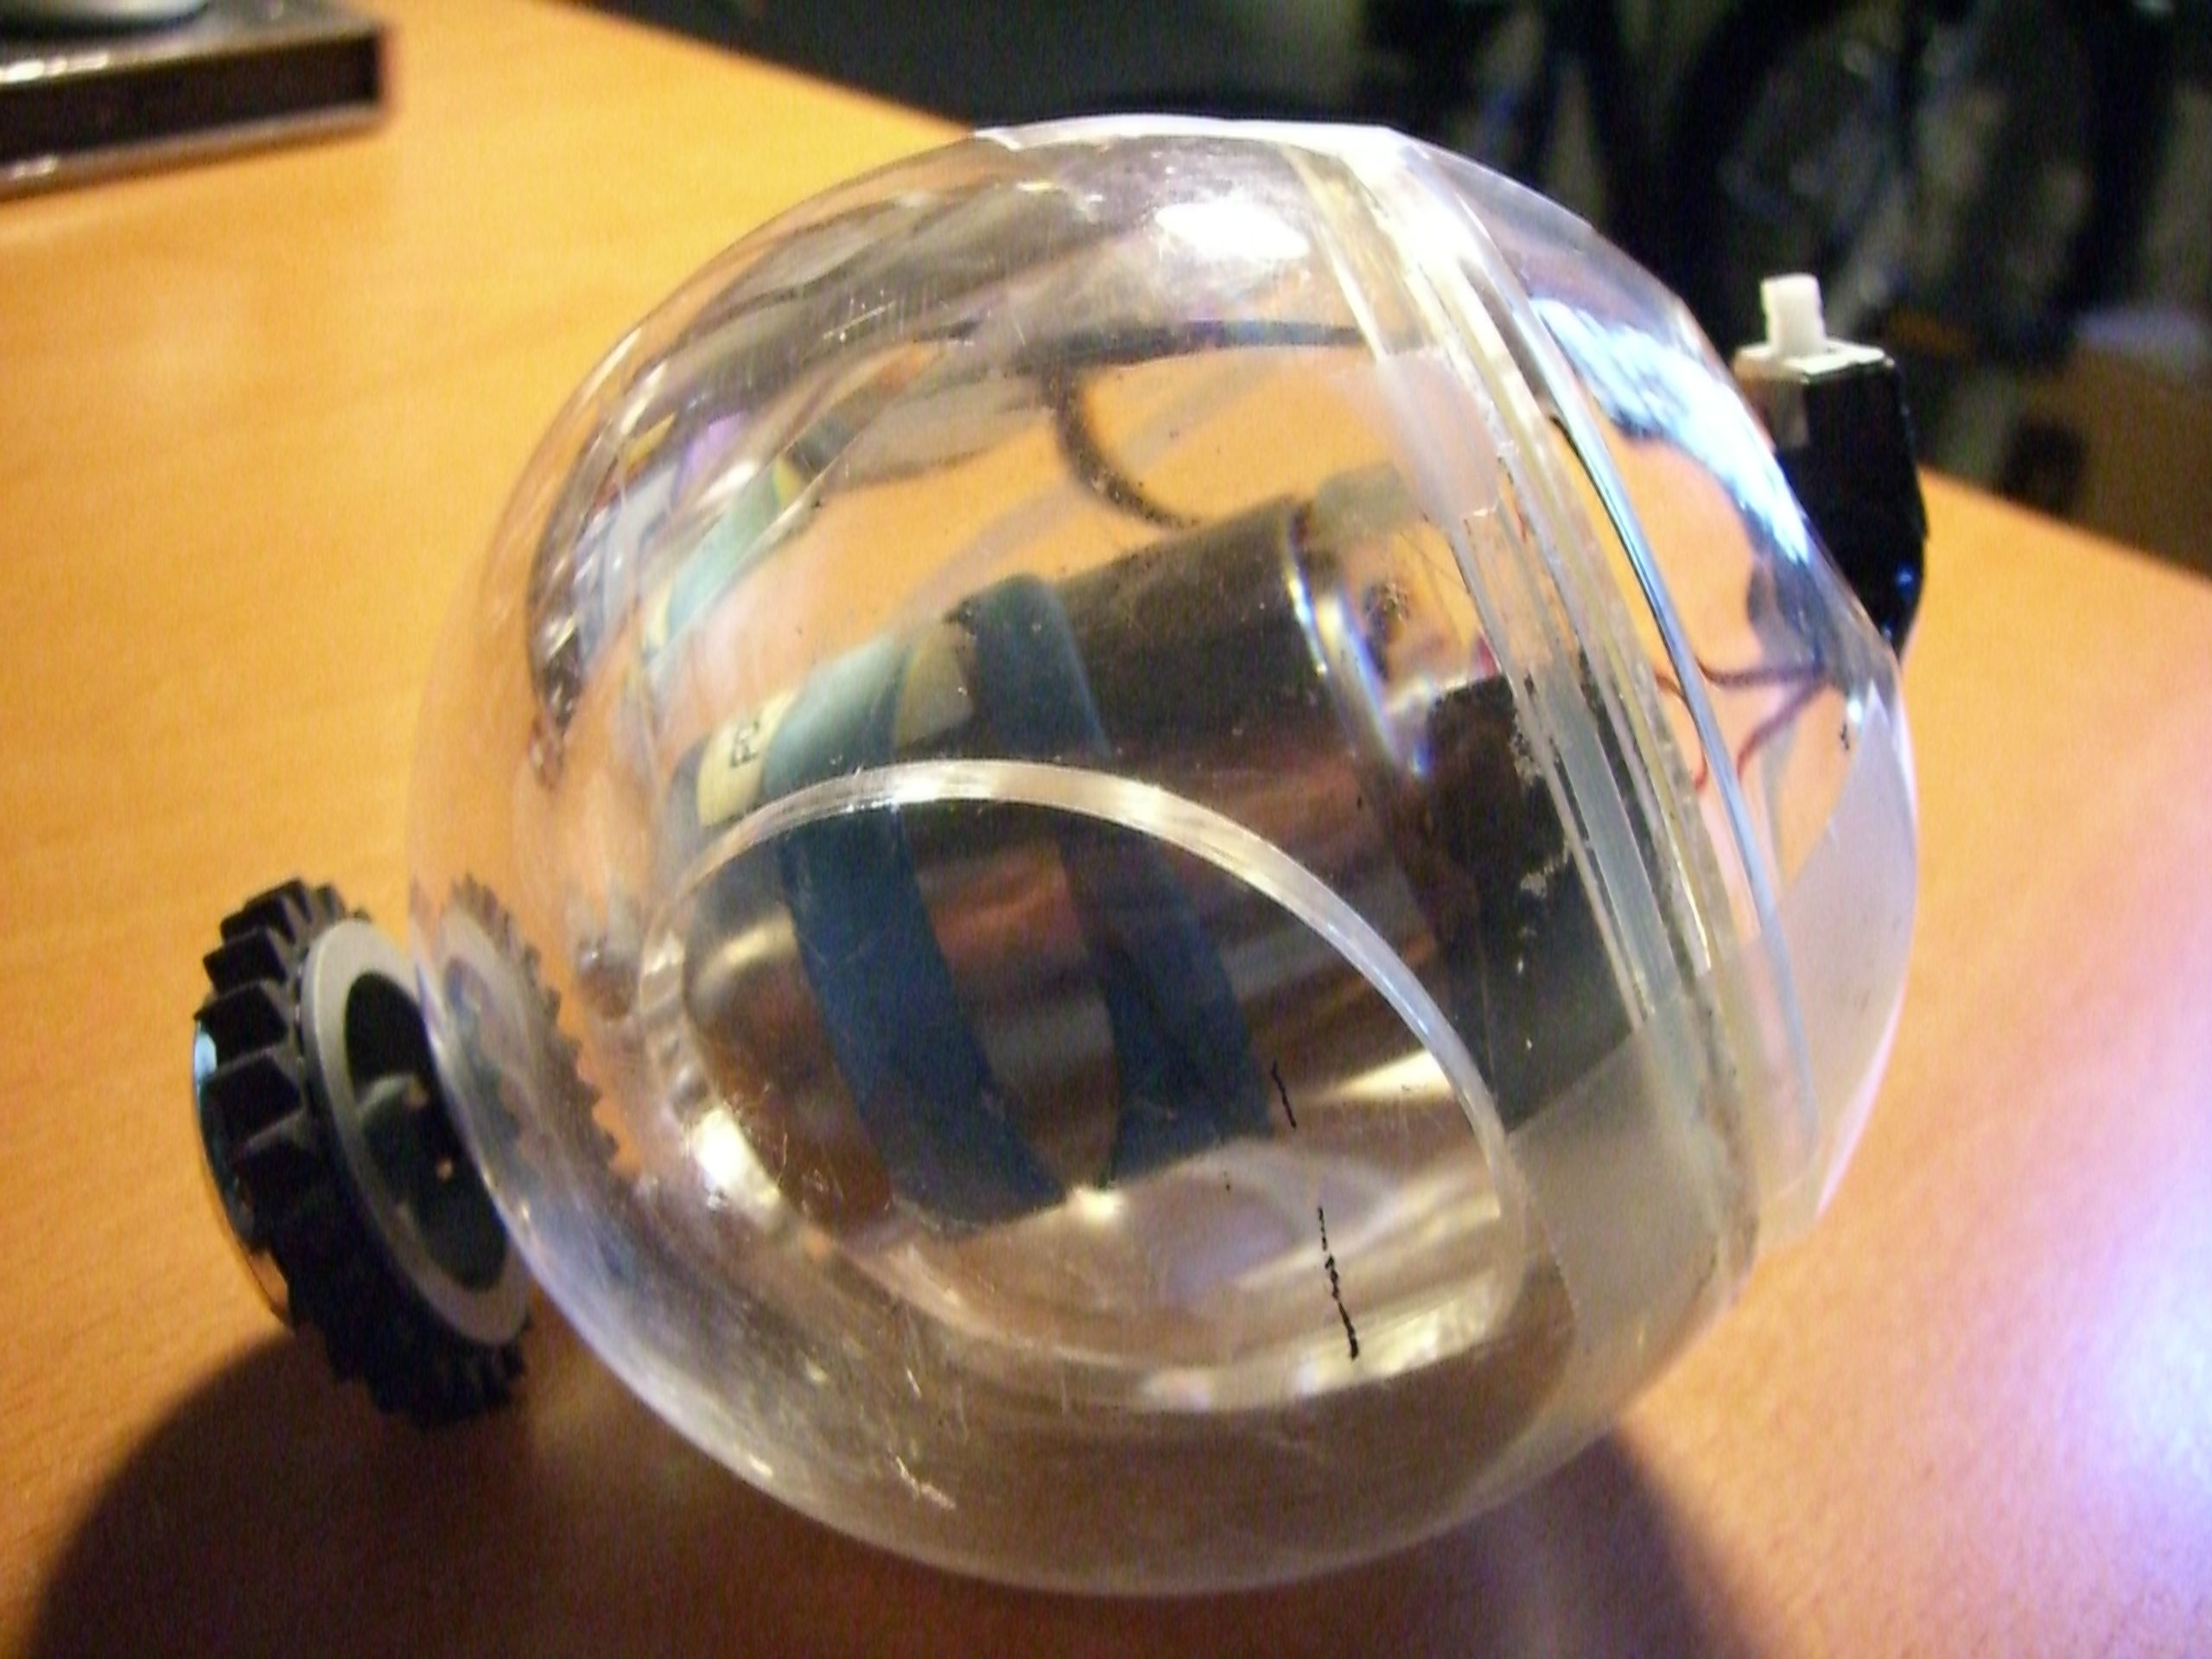 Picture of Ball of Death: or How I Learned to Stop Worrying and Love Apple Pro Speakers